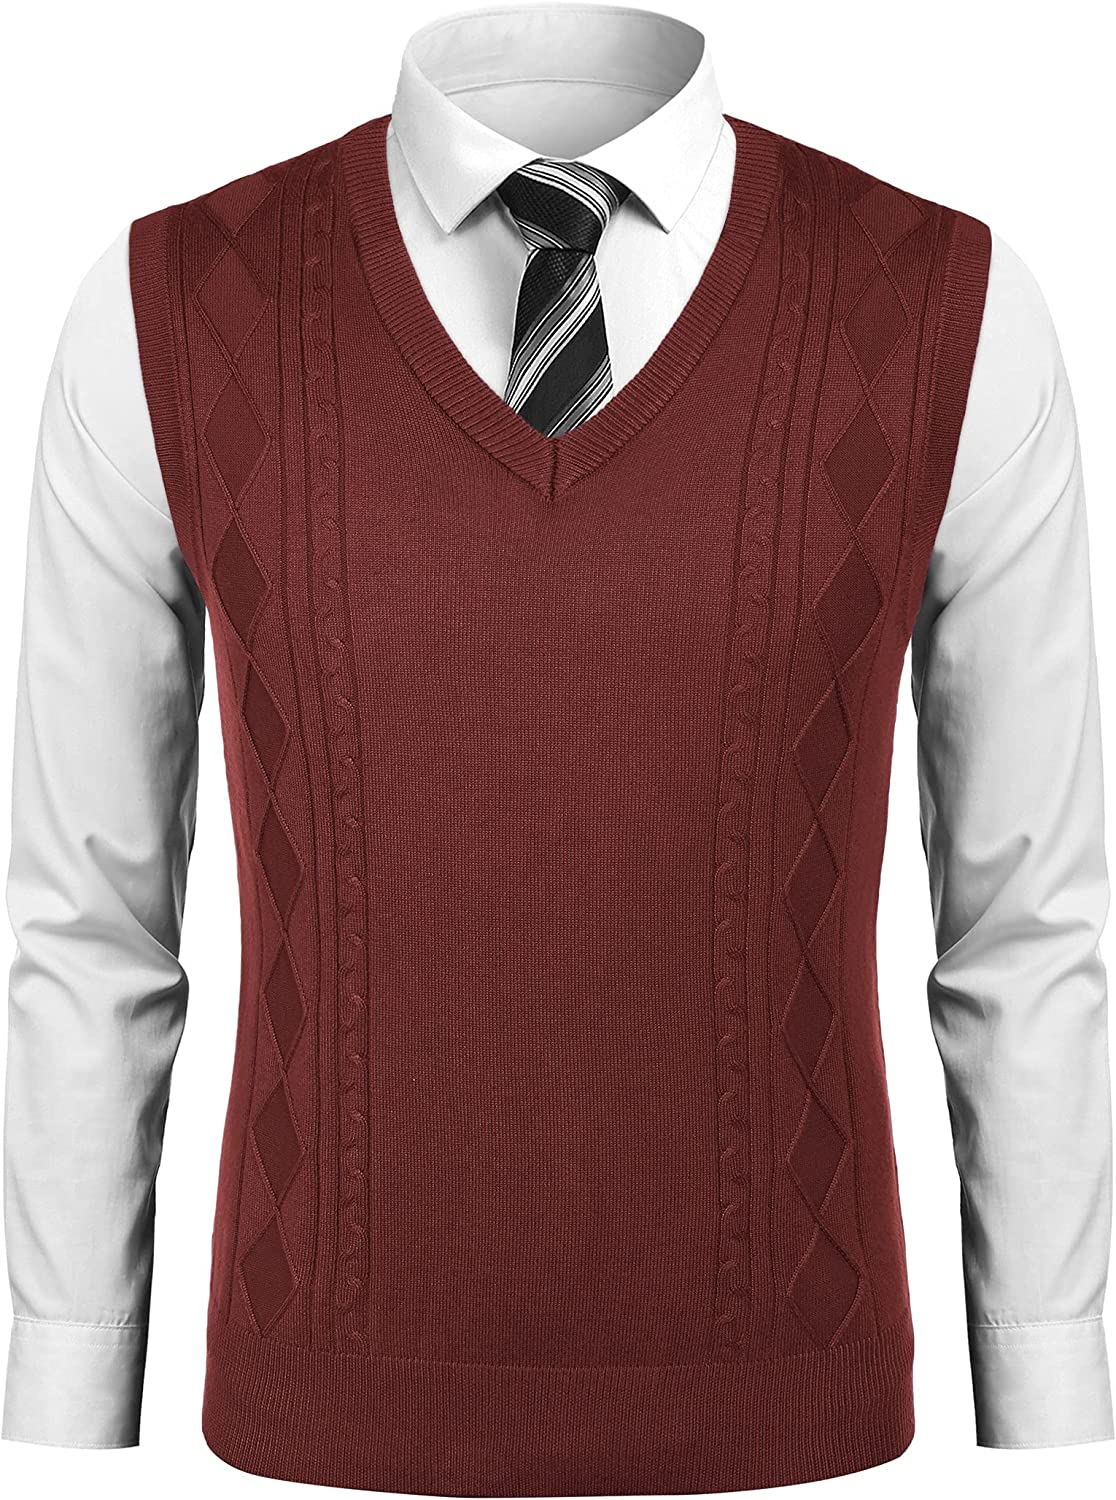 COOFANDY Men's Max 60% OFF Sweater Vests Knit Ranking integrated 1st place Sweaters Tennis Vest Cashmere